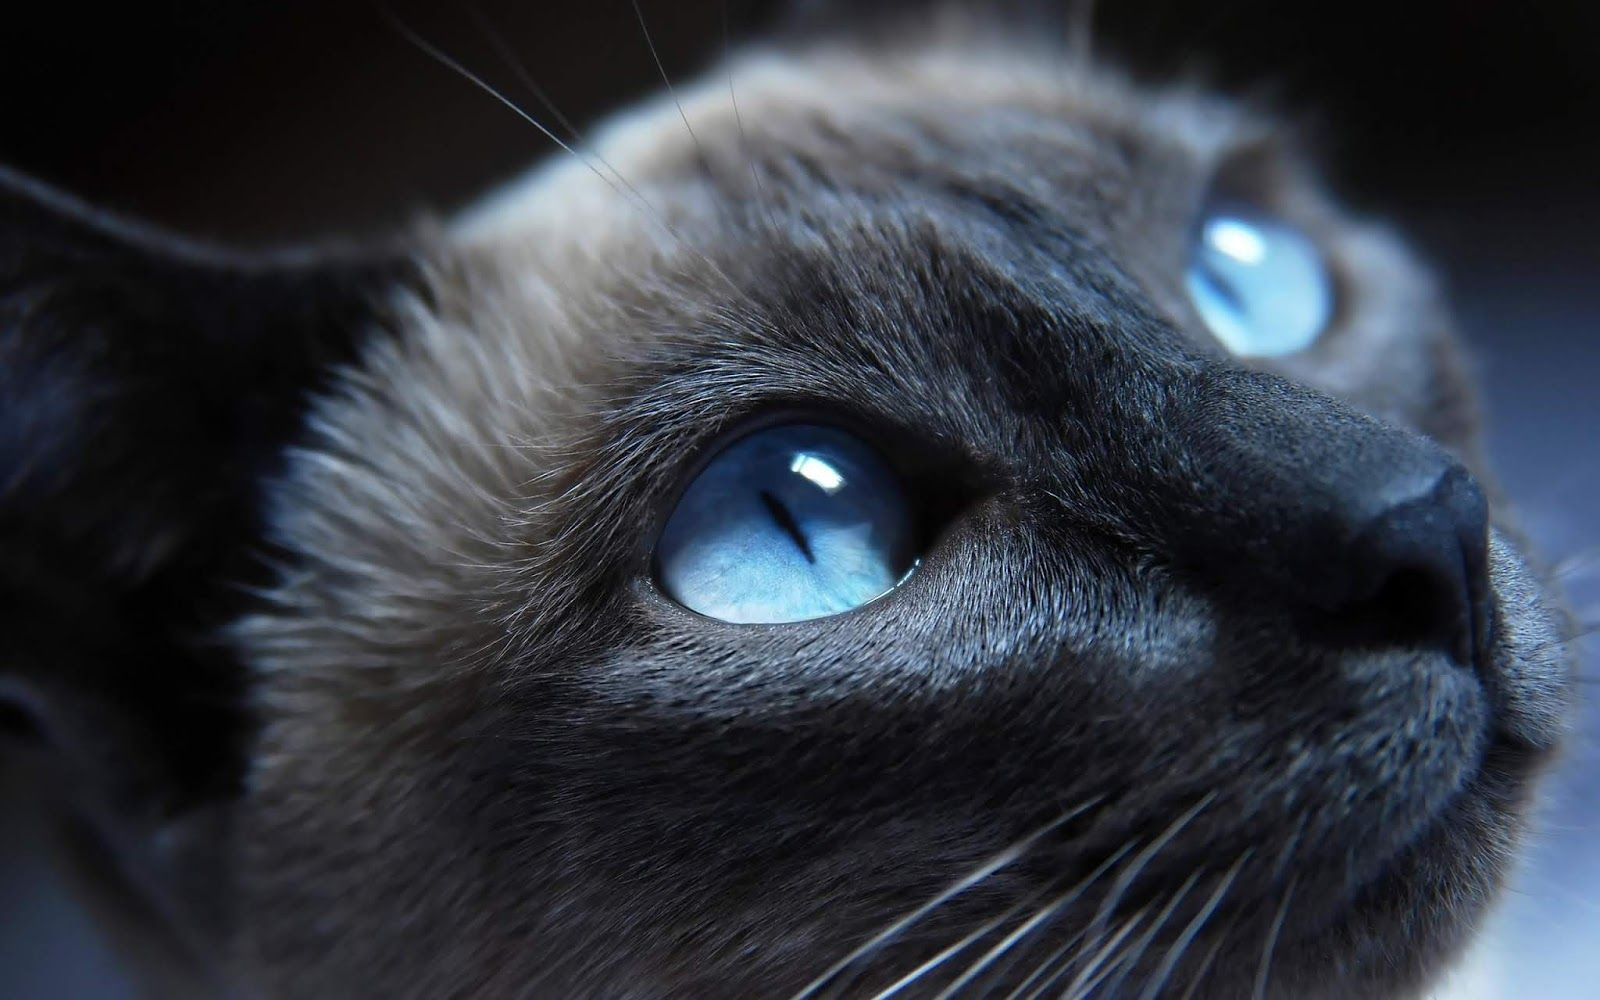 Blue Cat Wallpaper High Quality Desktop Iphone And Android